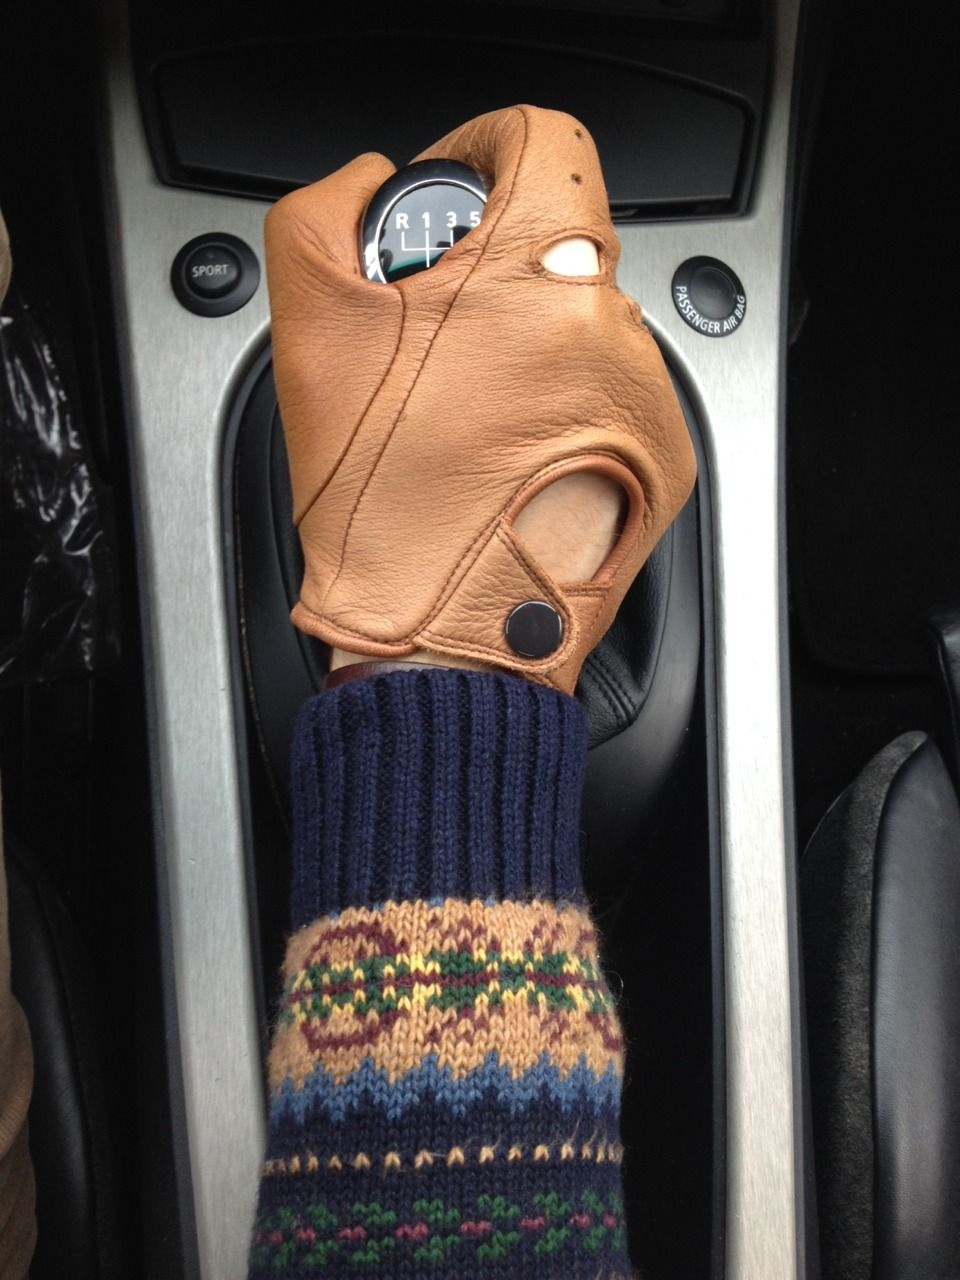 Driving gloves london ontario - 1000 Images About Cool On Pinterest Men S Street Fashion Army Love And Tom Ford